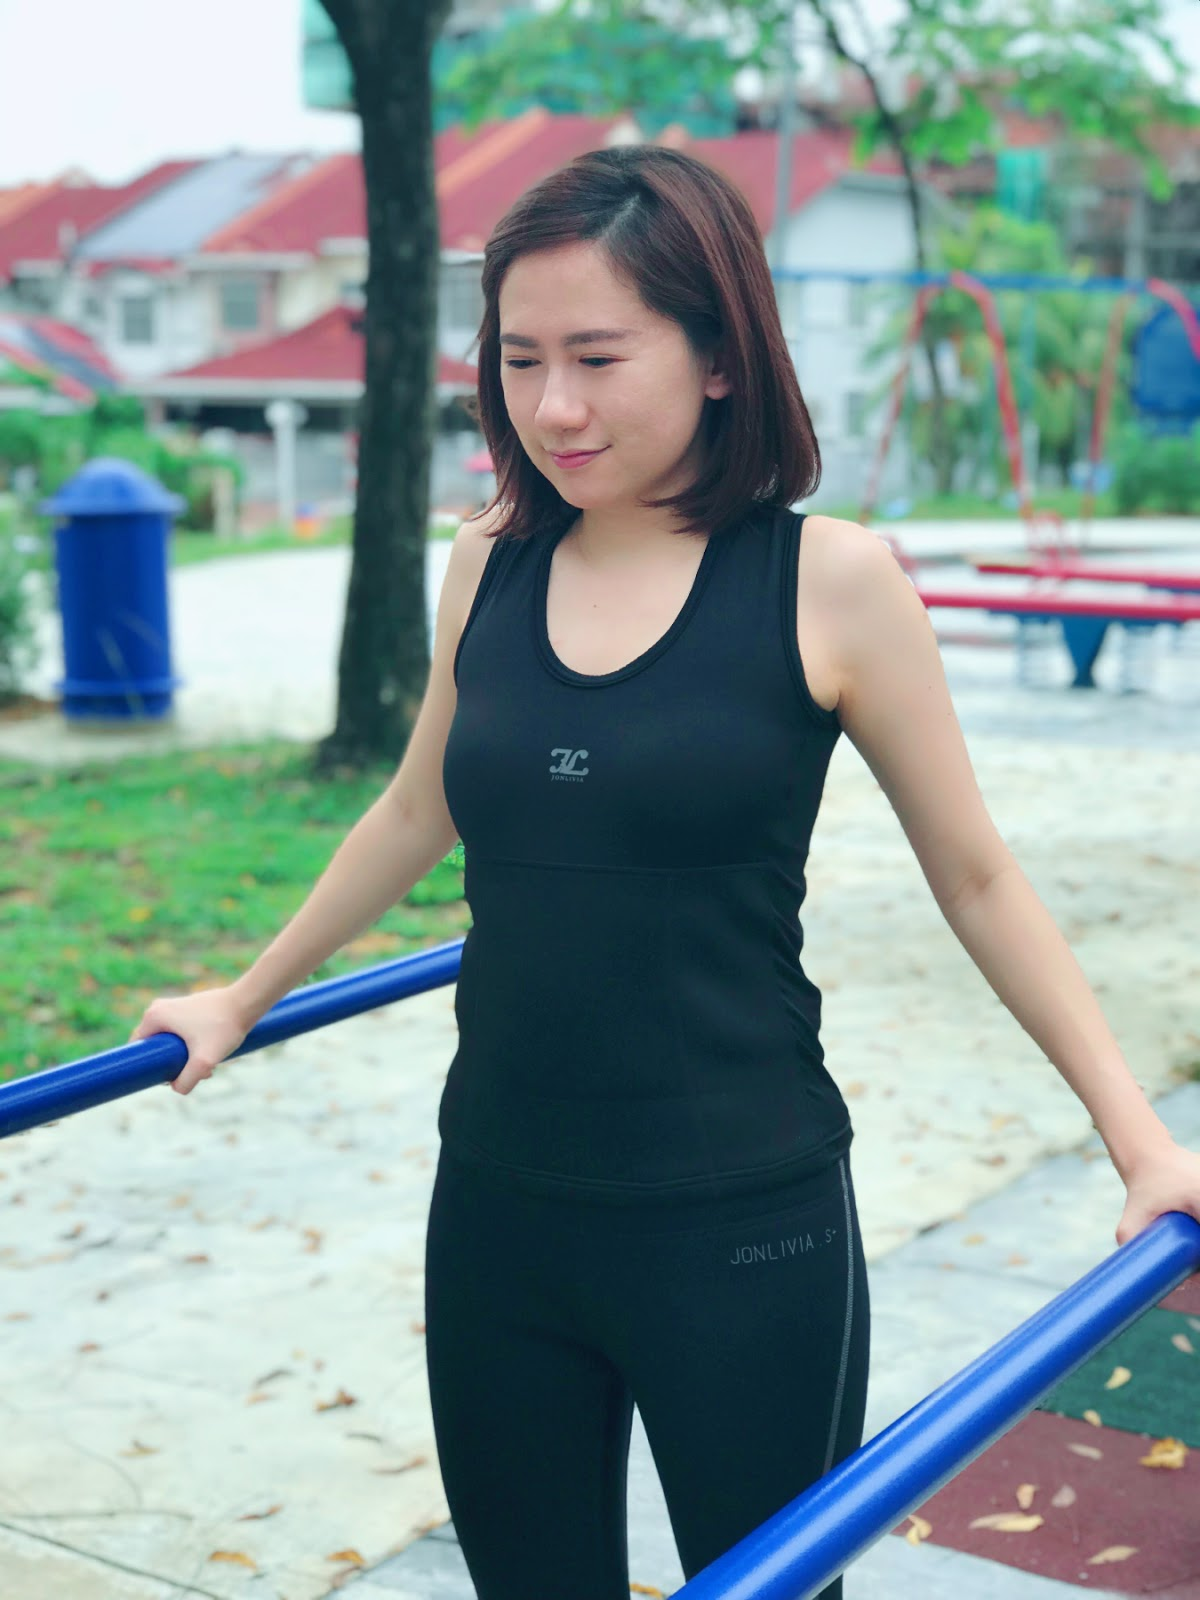 [Review] Trendy, Fashionable and Stylish Jonlivia ActiveSeries - ActivSinglet with Pocket